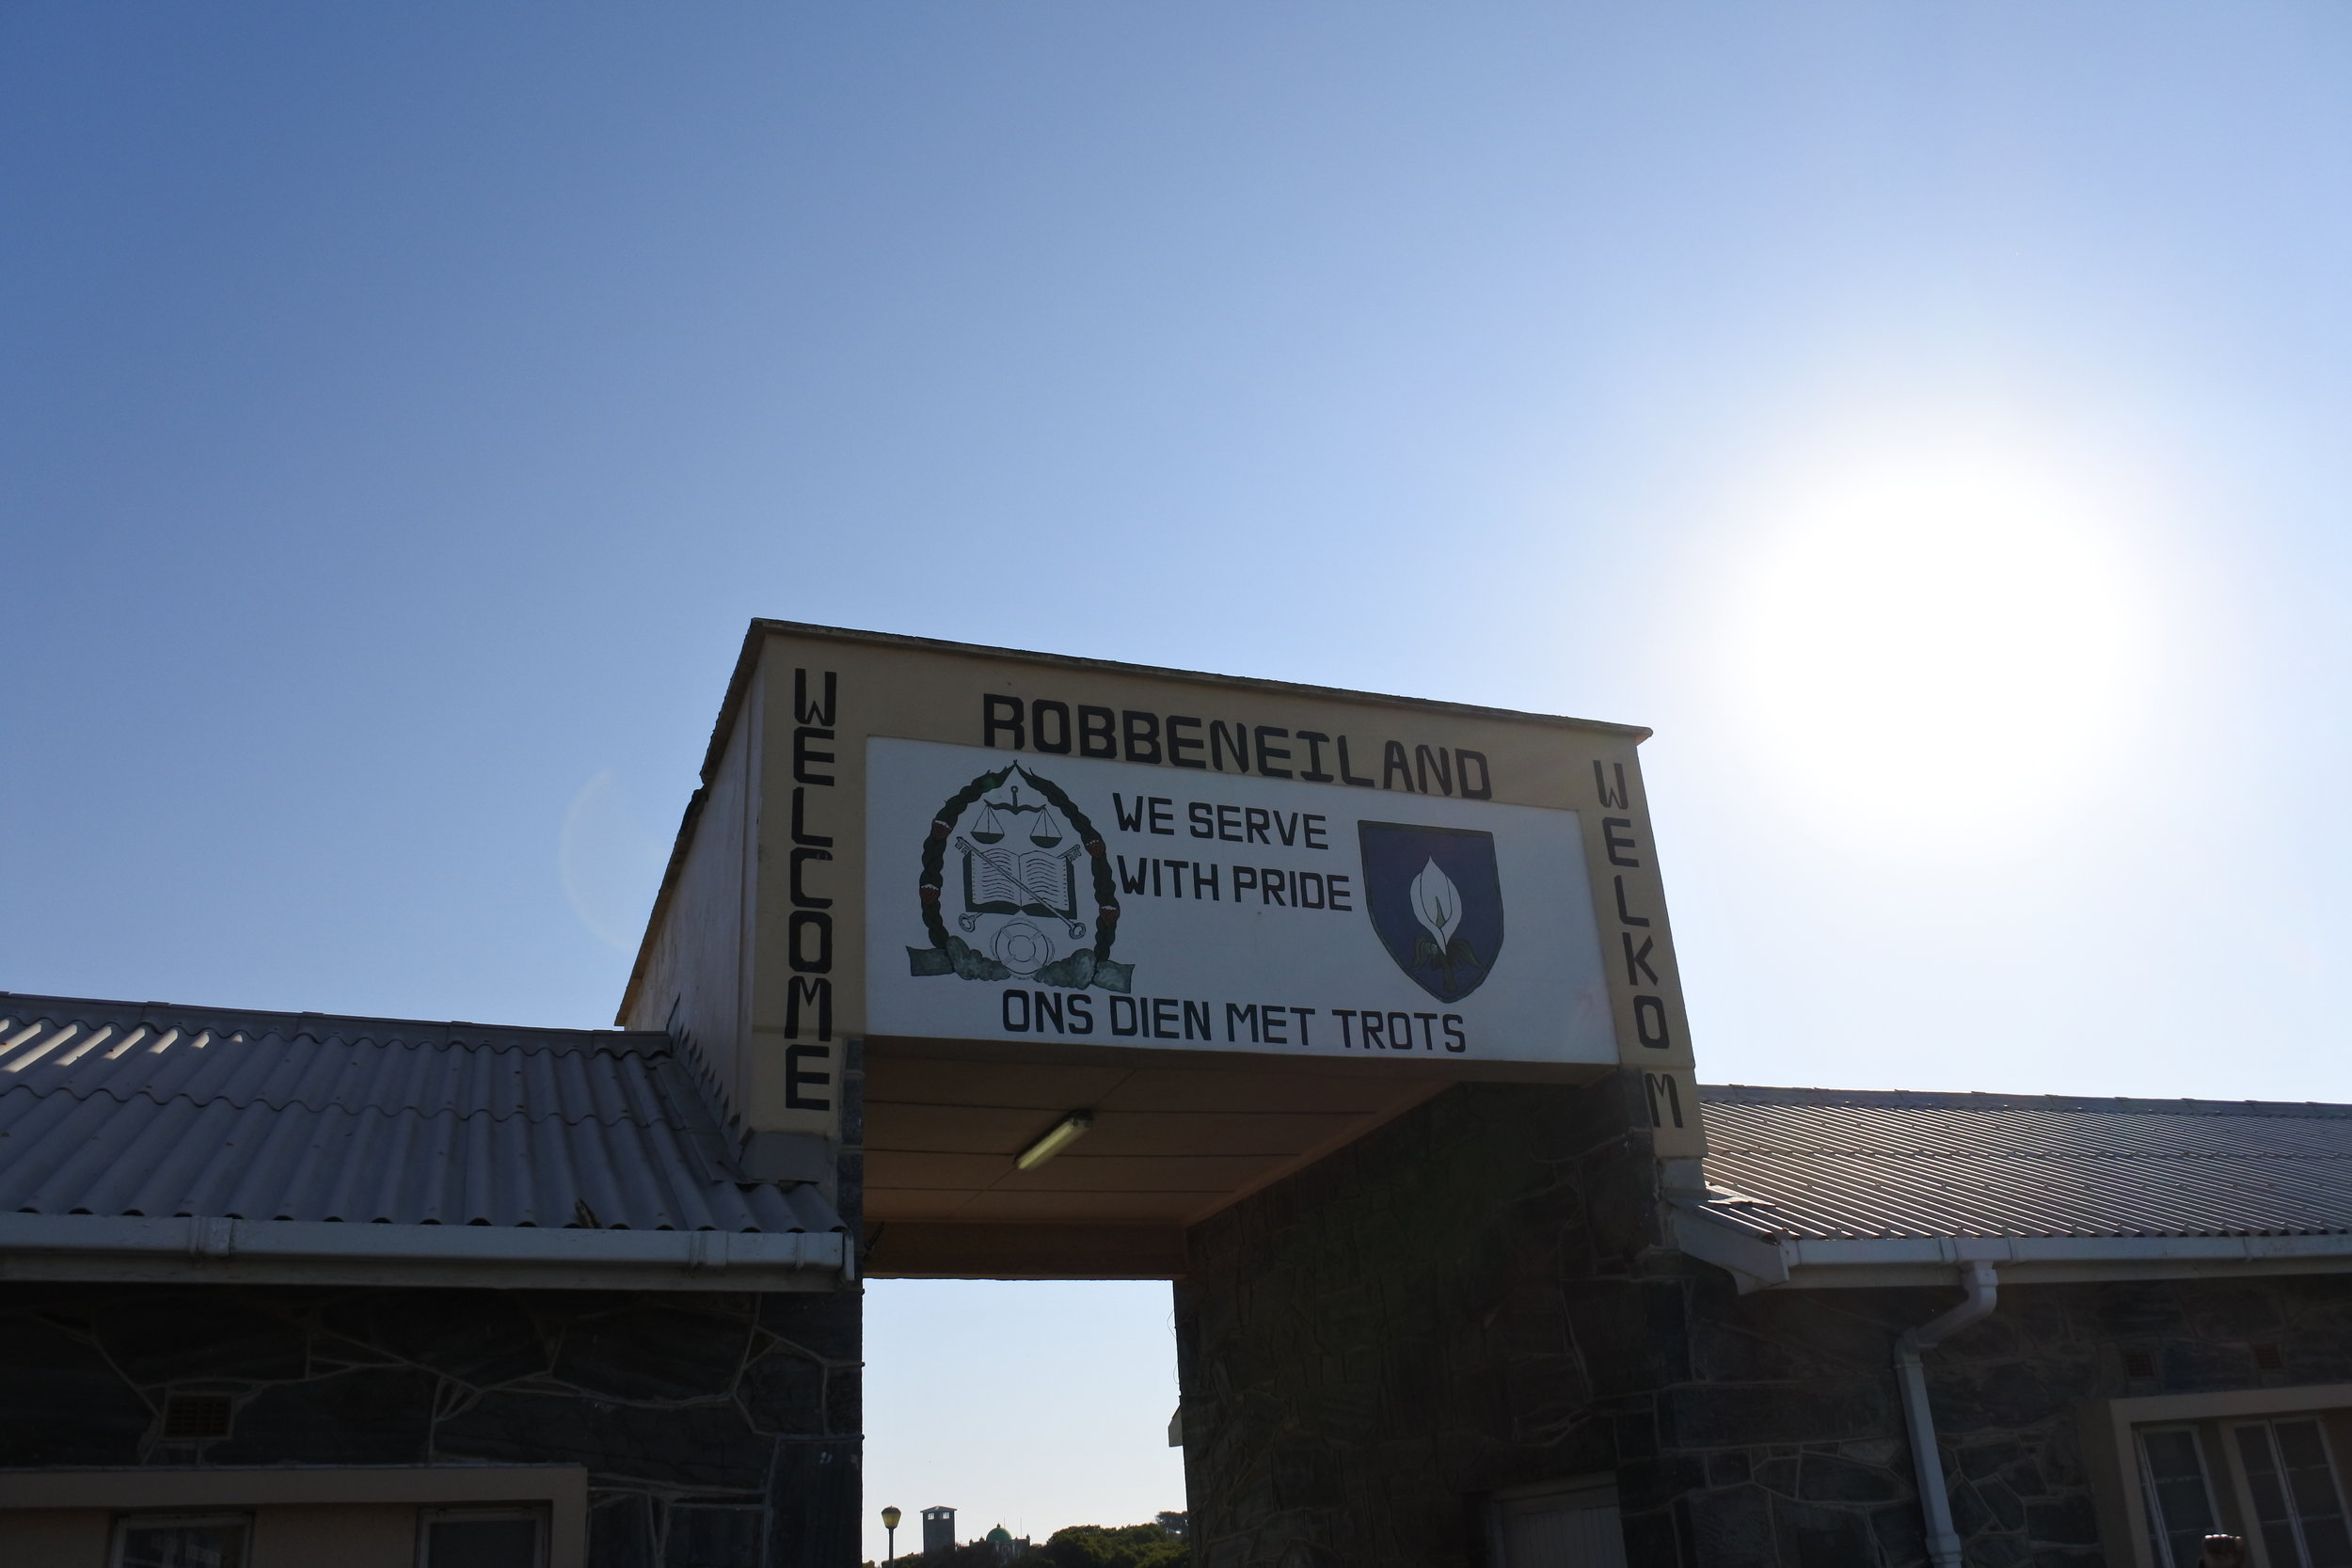 The Entrance at Robbeneiland